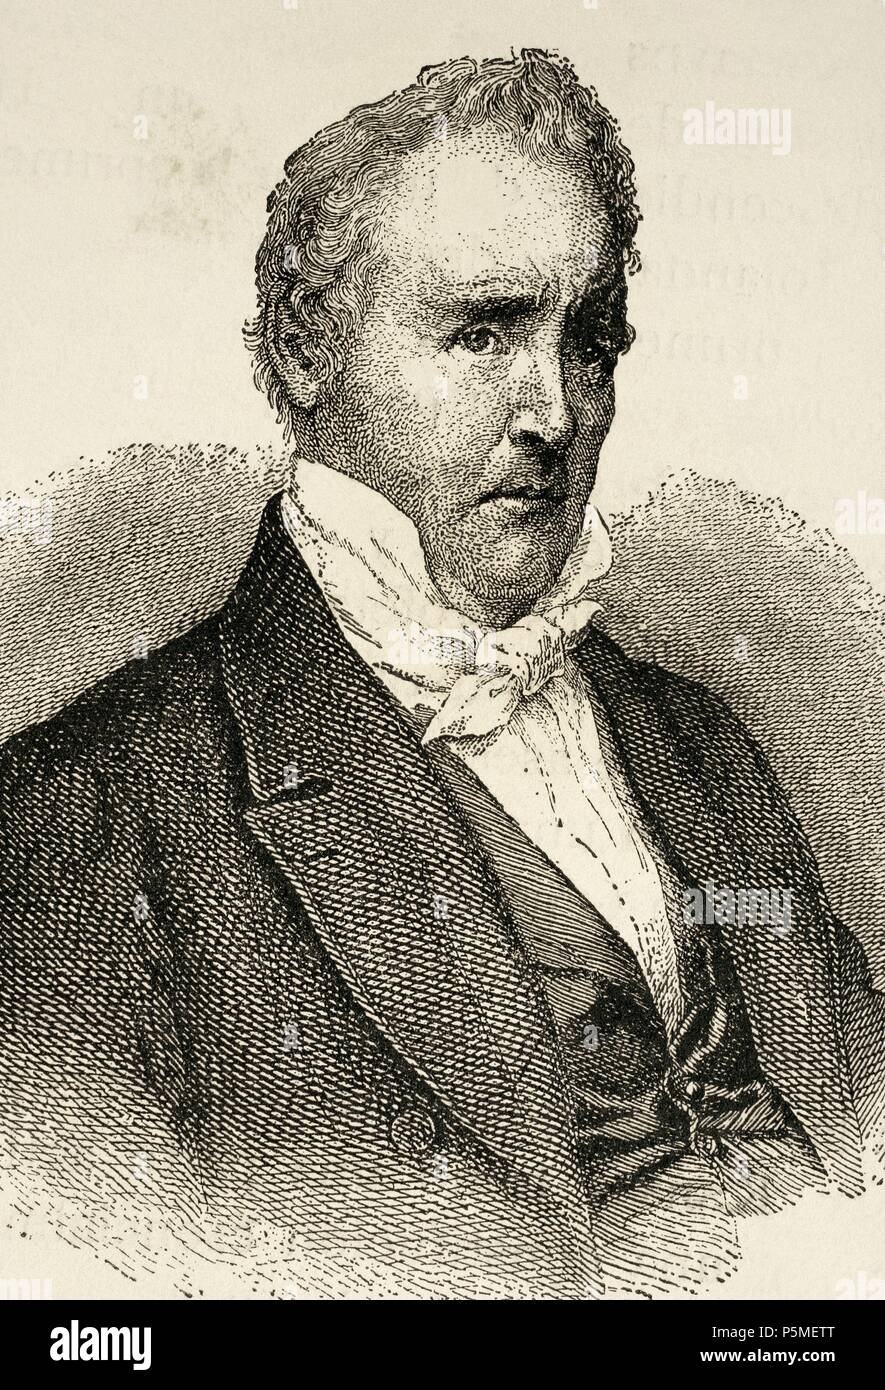 James Buchanan (1791-1868). American politician. 15th President of the United States (1857-1861). Engraving in World History, 1885. - Stock Image